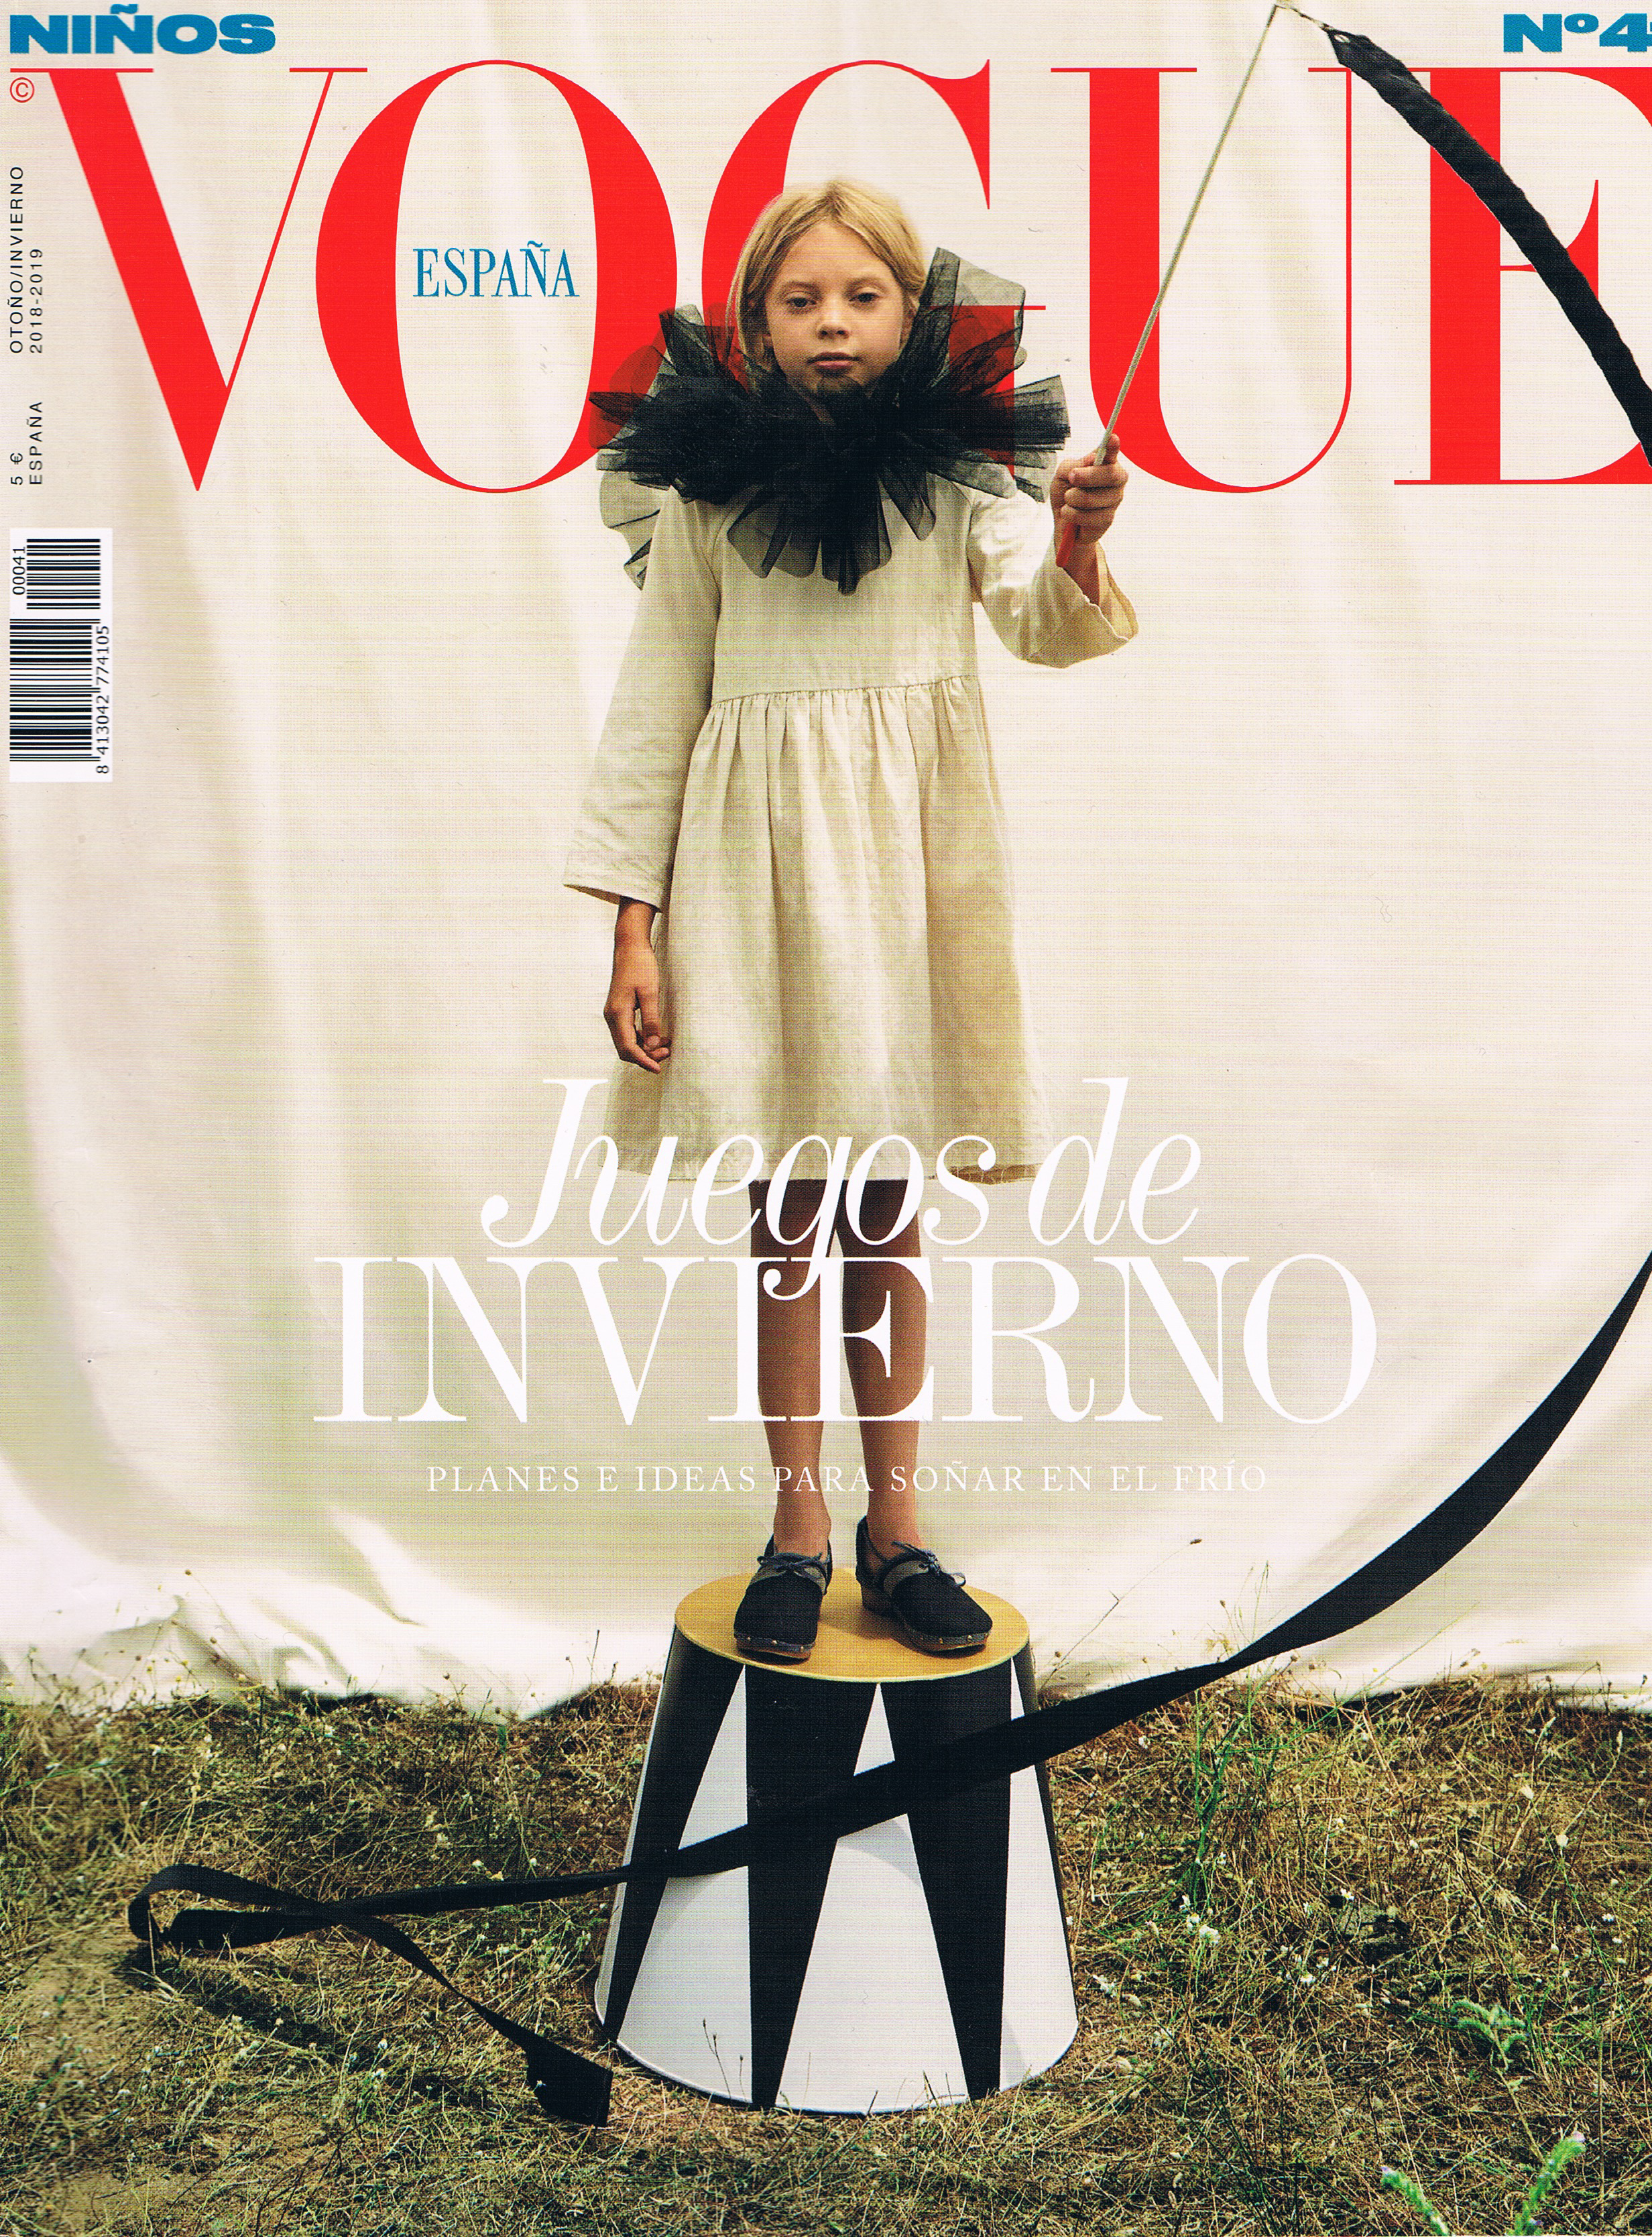 VOGUE NINOS WINTER 18